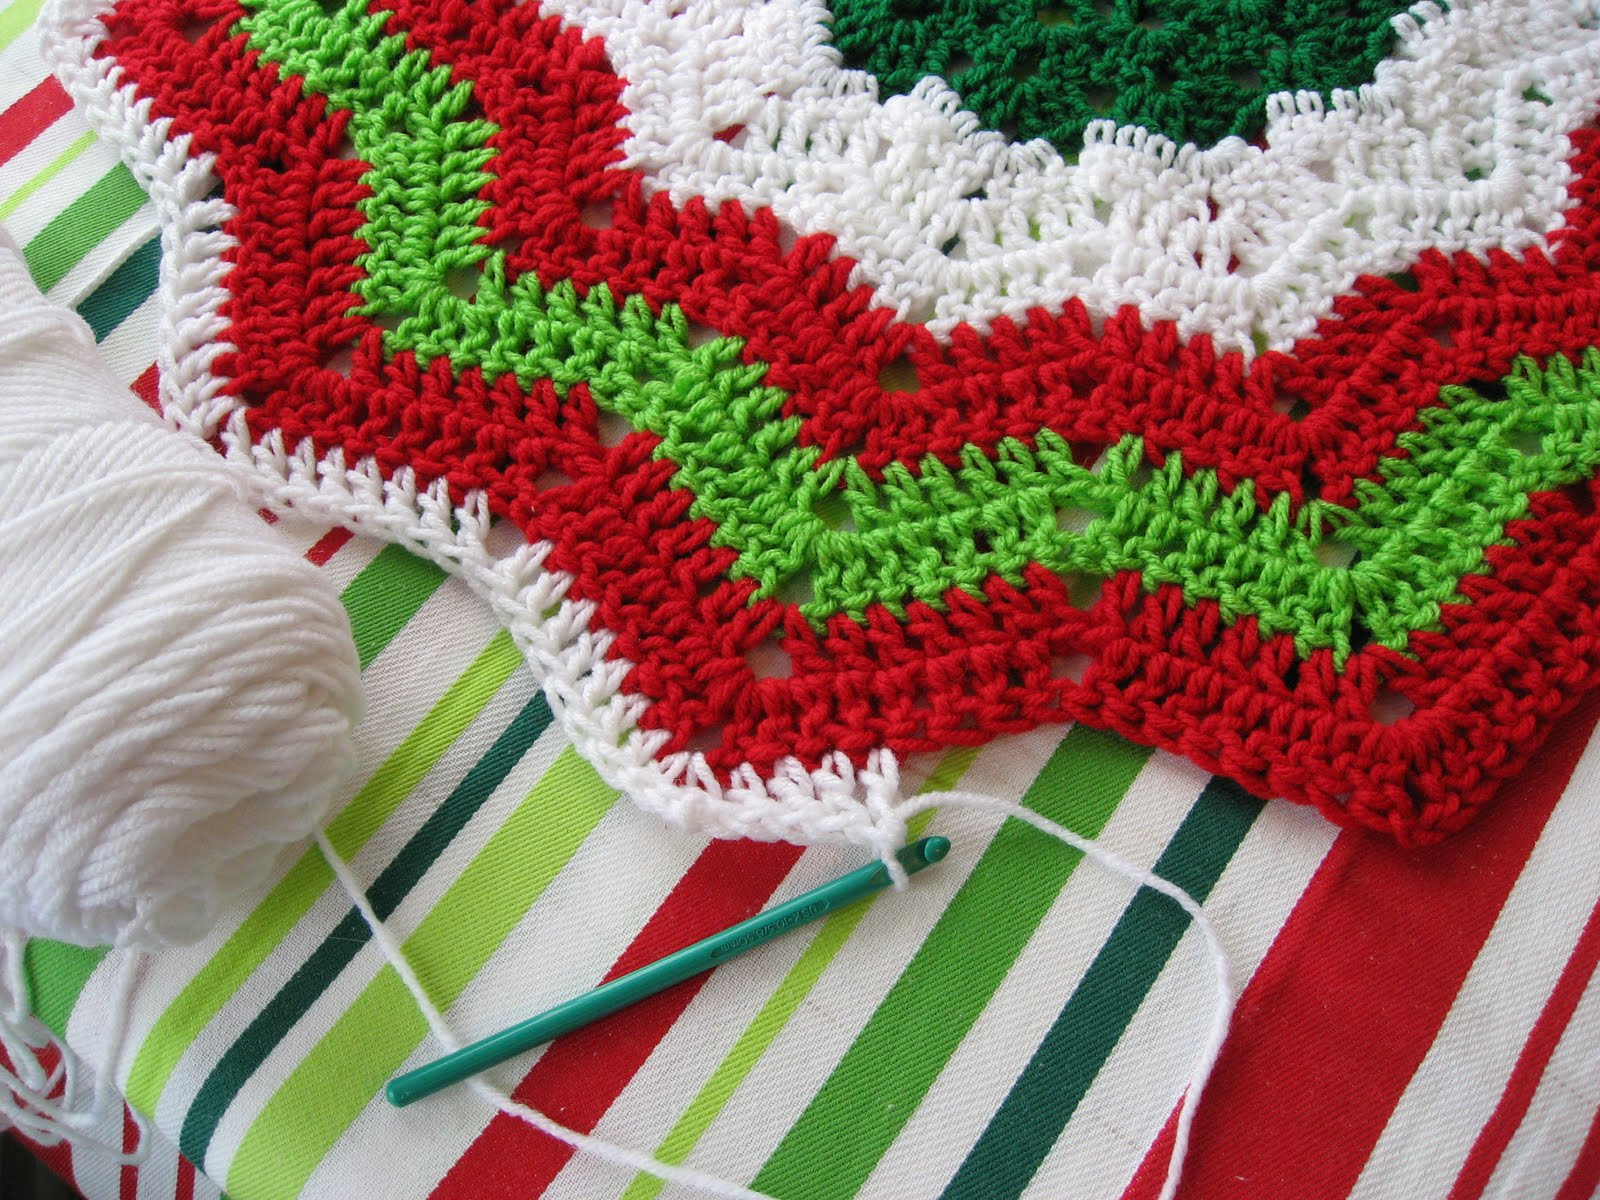 Christmas Tree Ornament Crochet Pattern Free Crochet